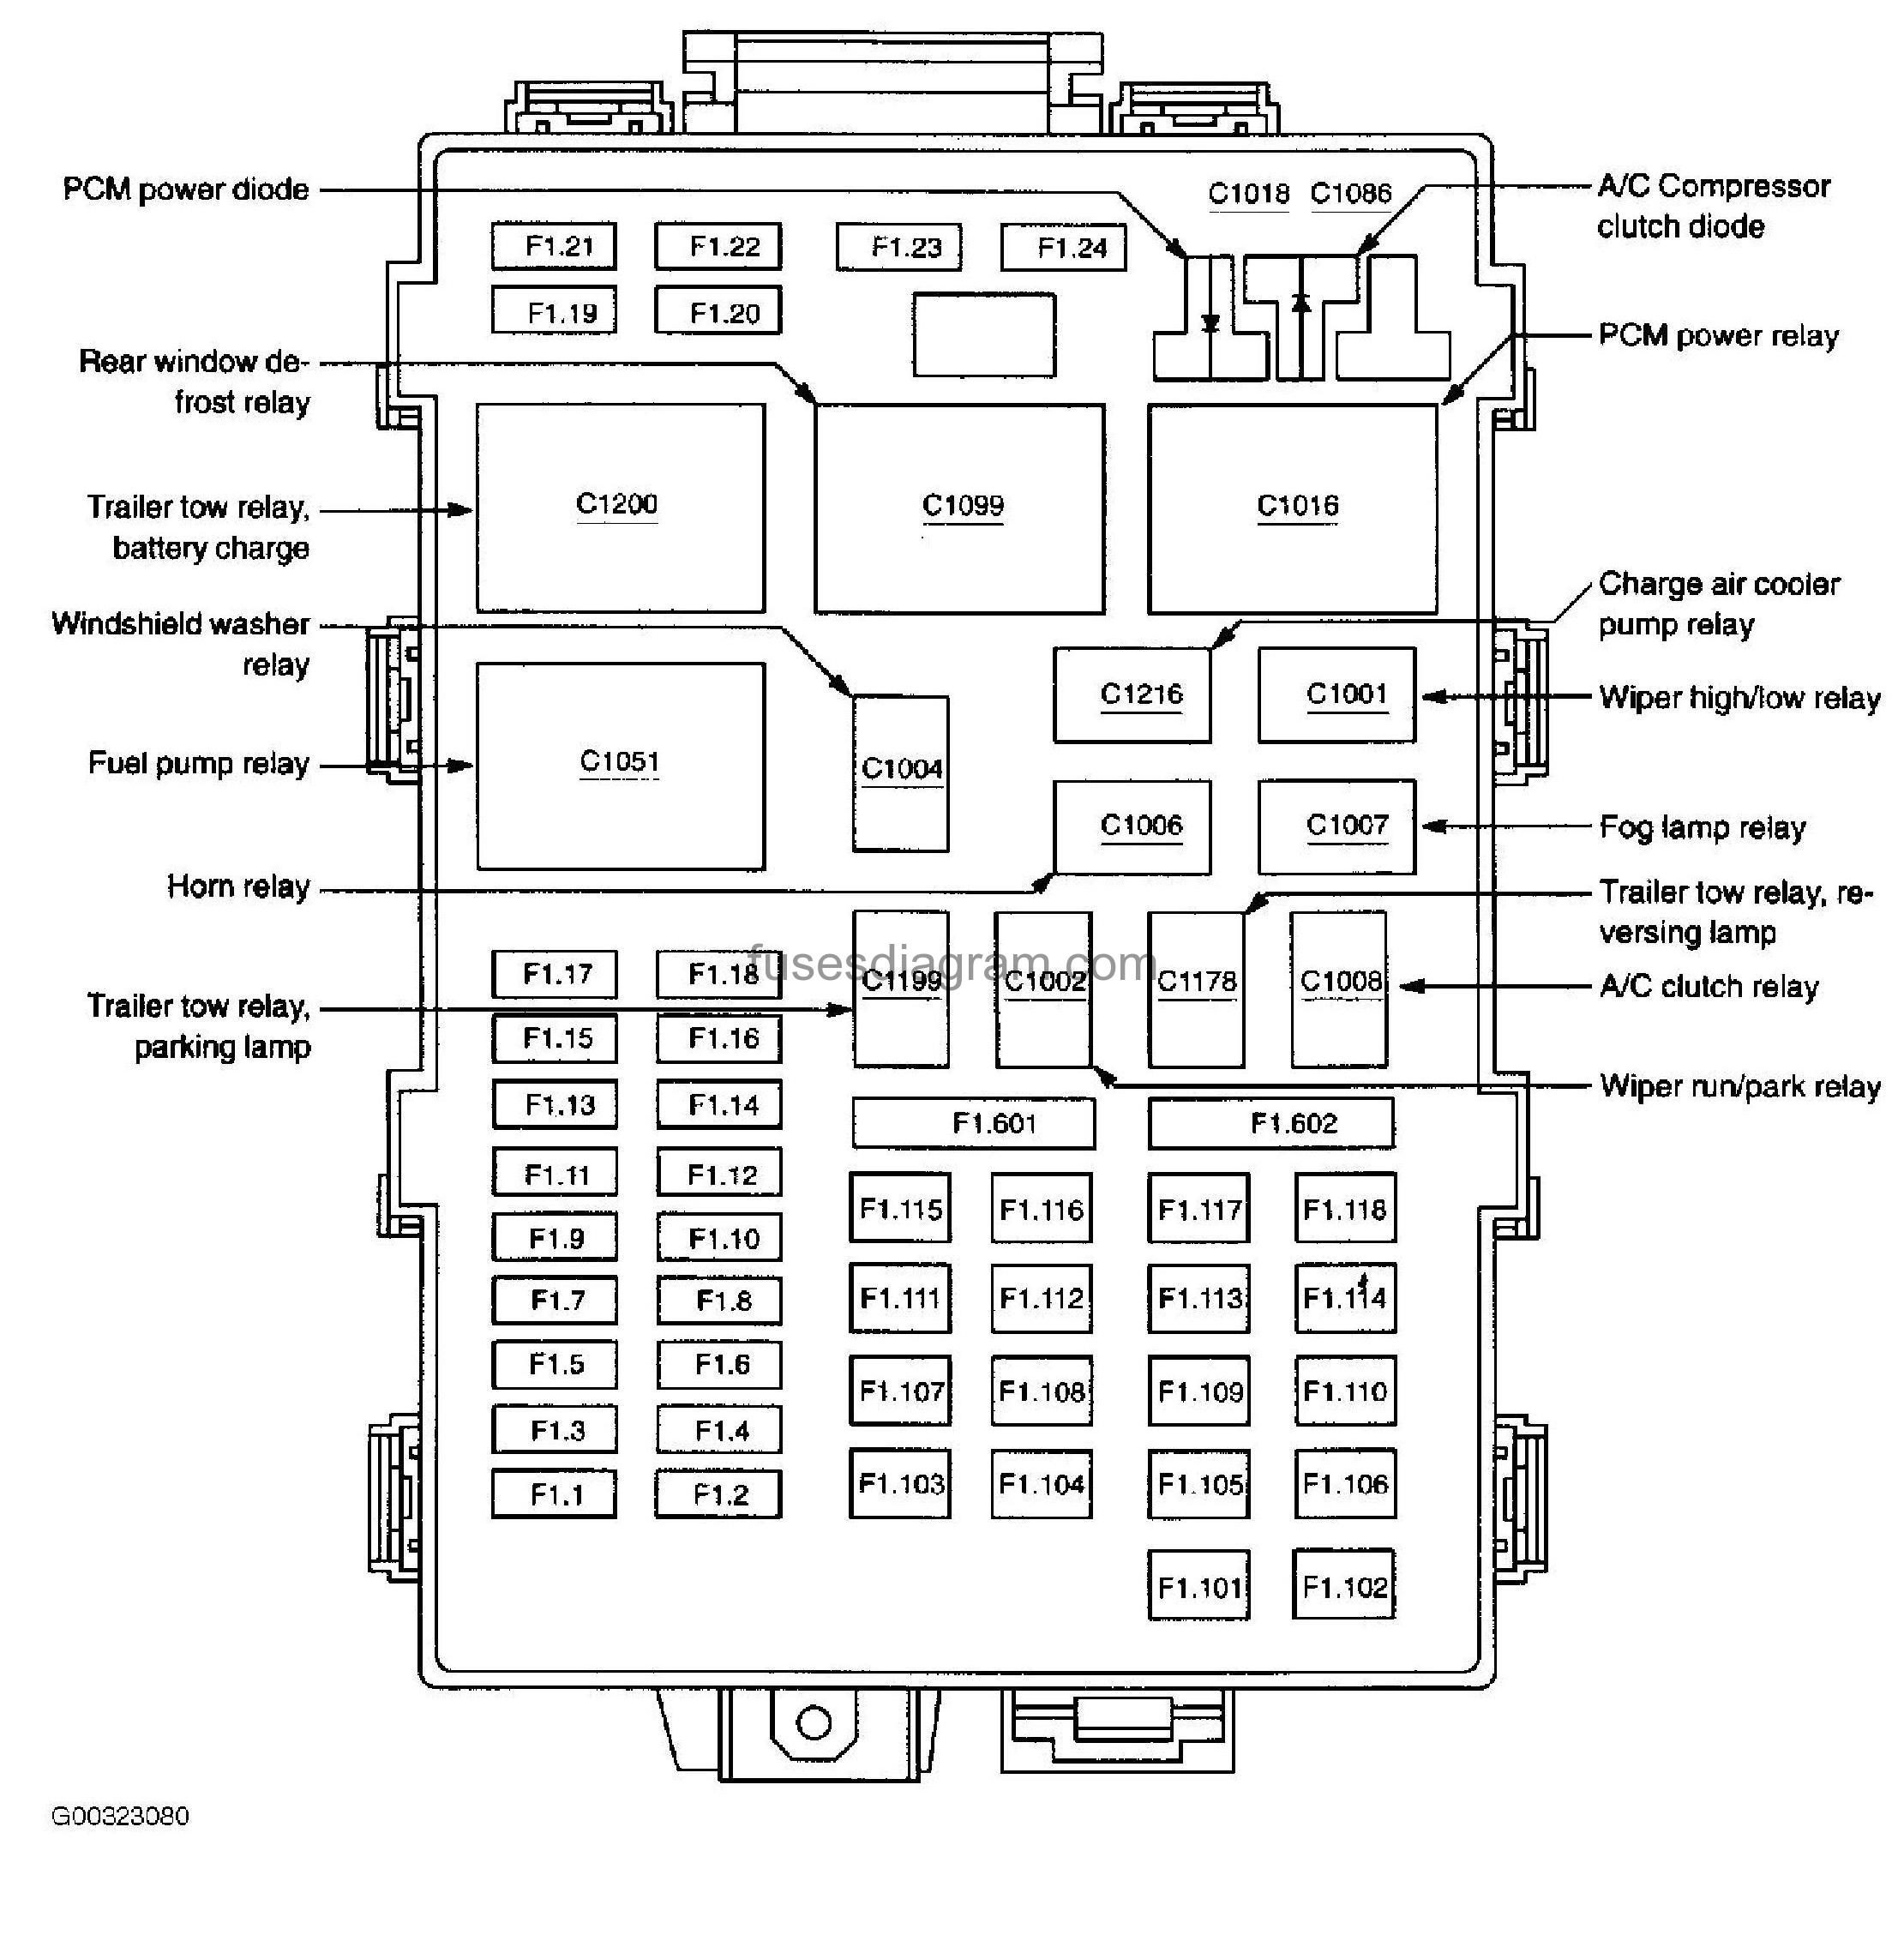 Fuses and relay box diagram Ford F150 1997-2003